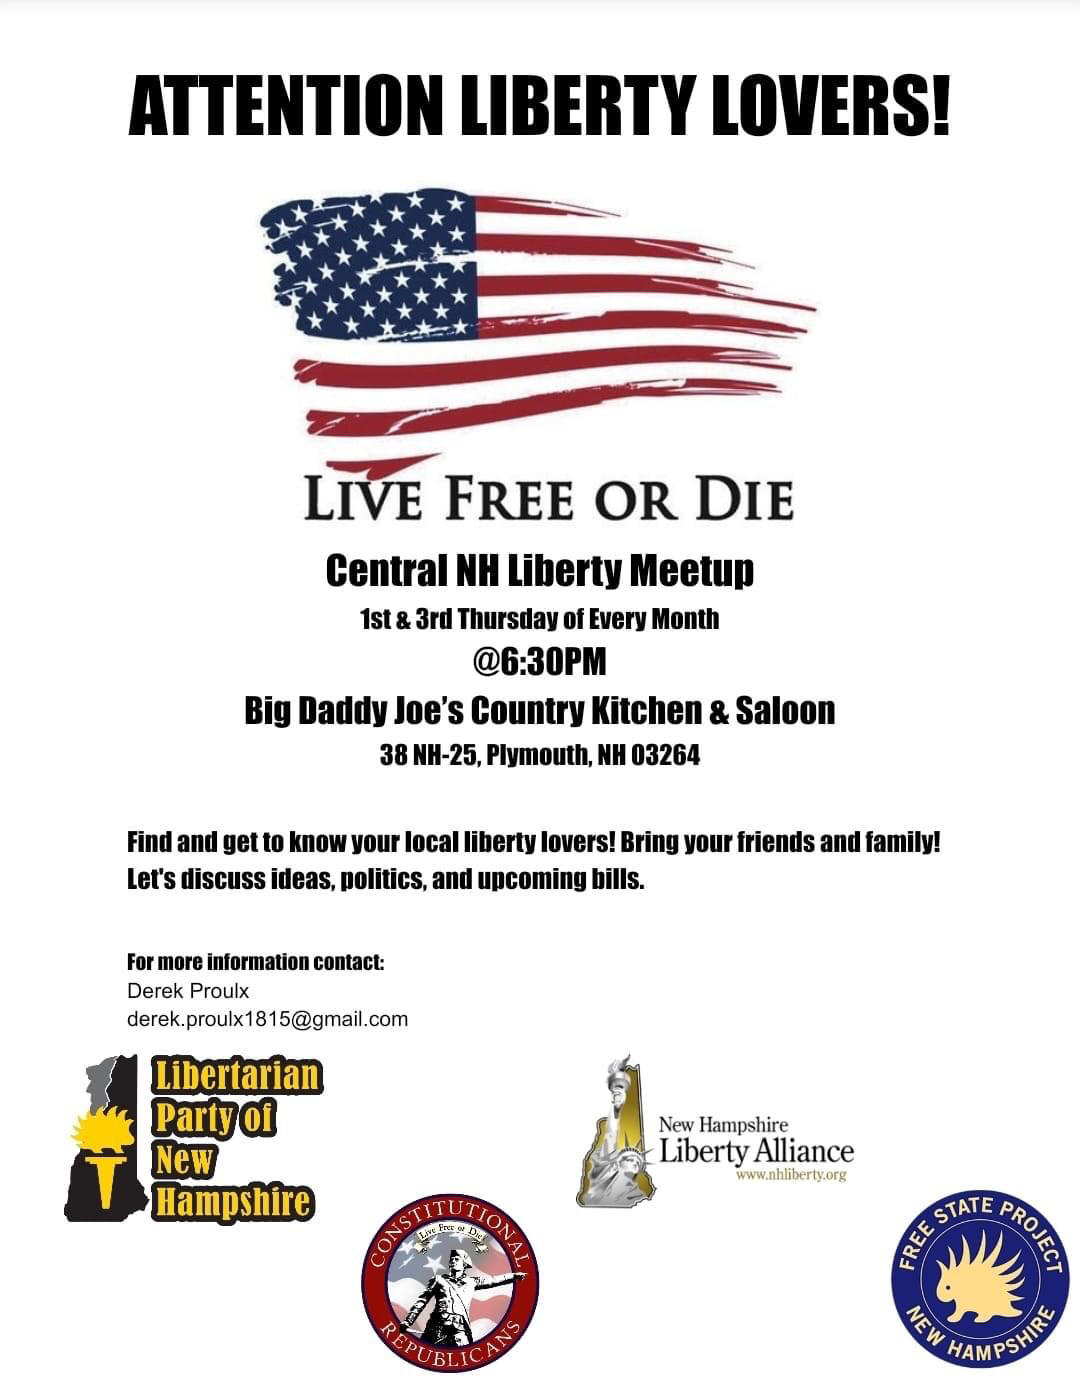 Central NH Liberty Meet Up @ Big Daddy Joe's Country Kitchen and Saloon